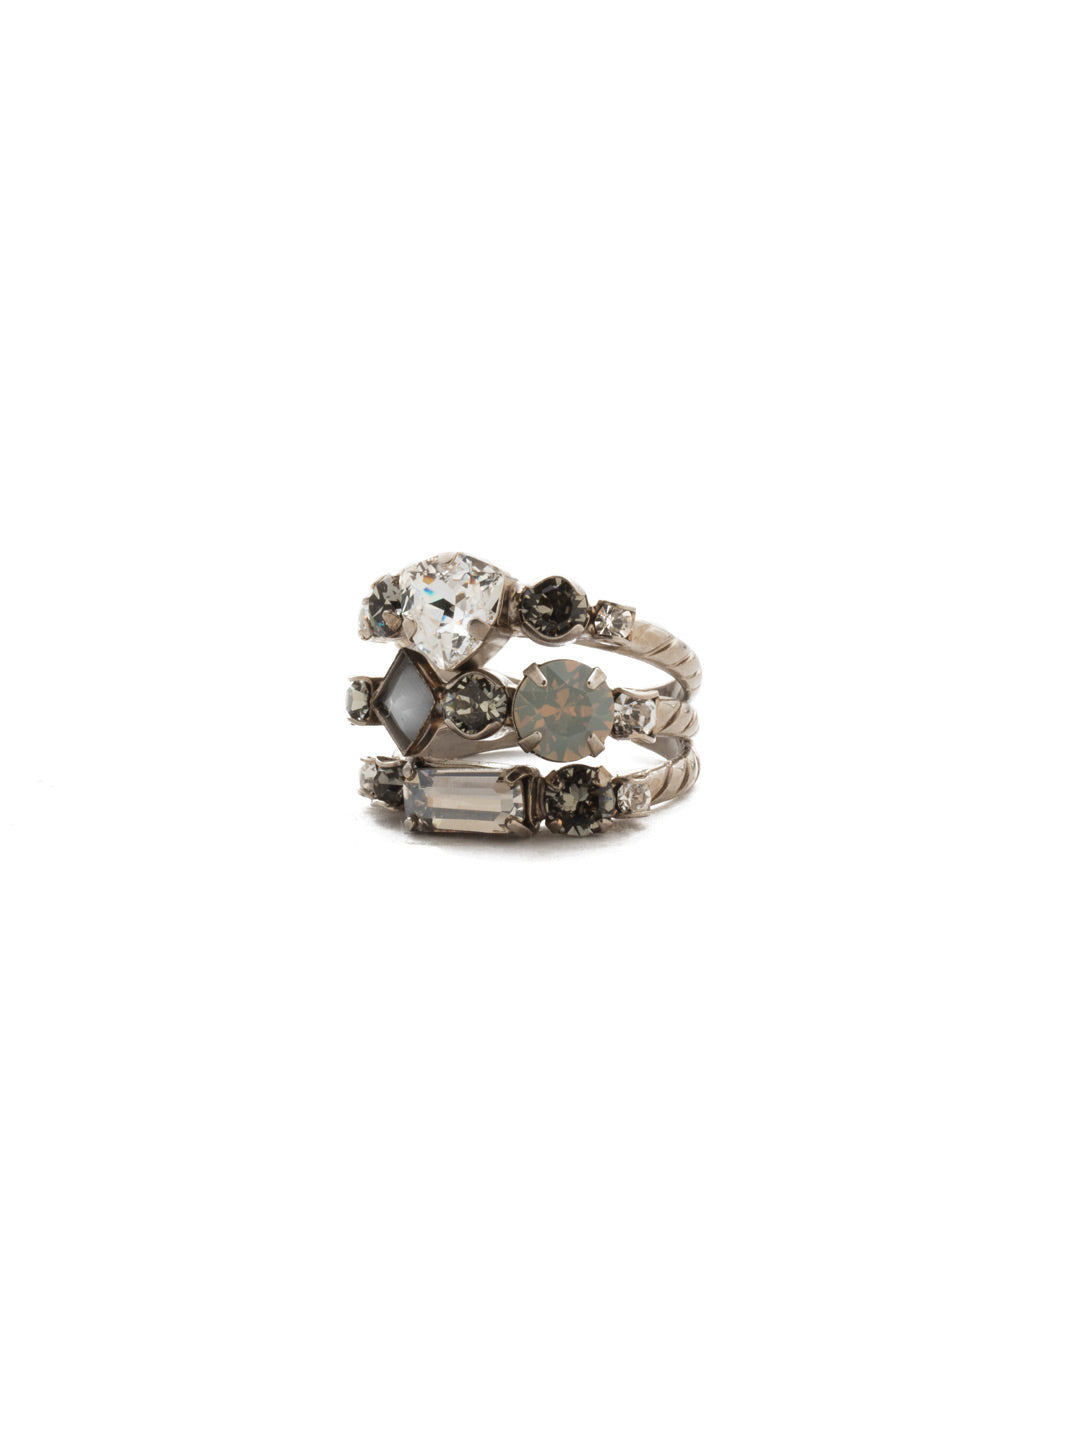 Sedge Stacked Stacked Ring - RDX1ASSTC